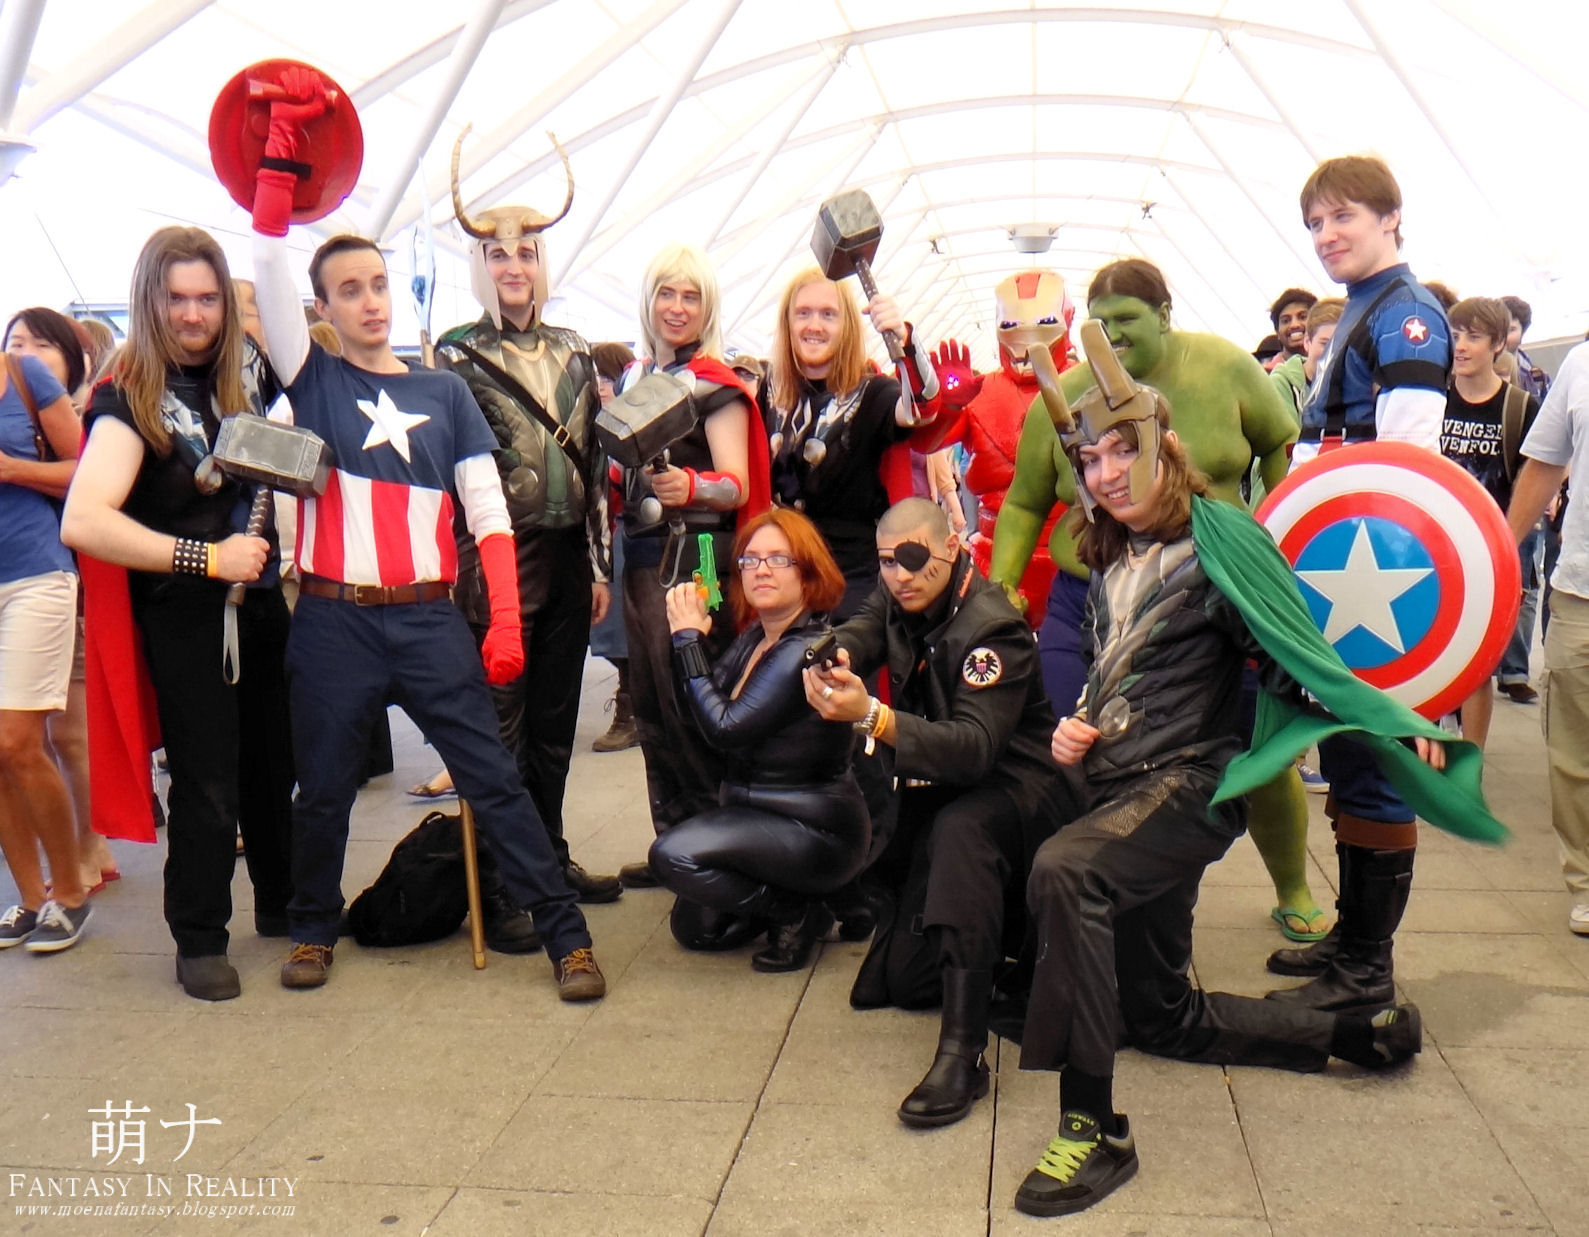 Costume ideas for groups -  This Group Of Superheroes Has Stolen Our Hearts With Their Assorted Movies Over The Years Dress Up As Your Favorites And Band Together To Fight Evil